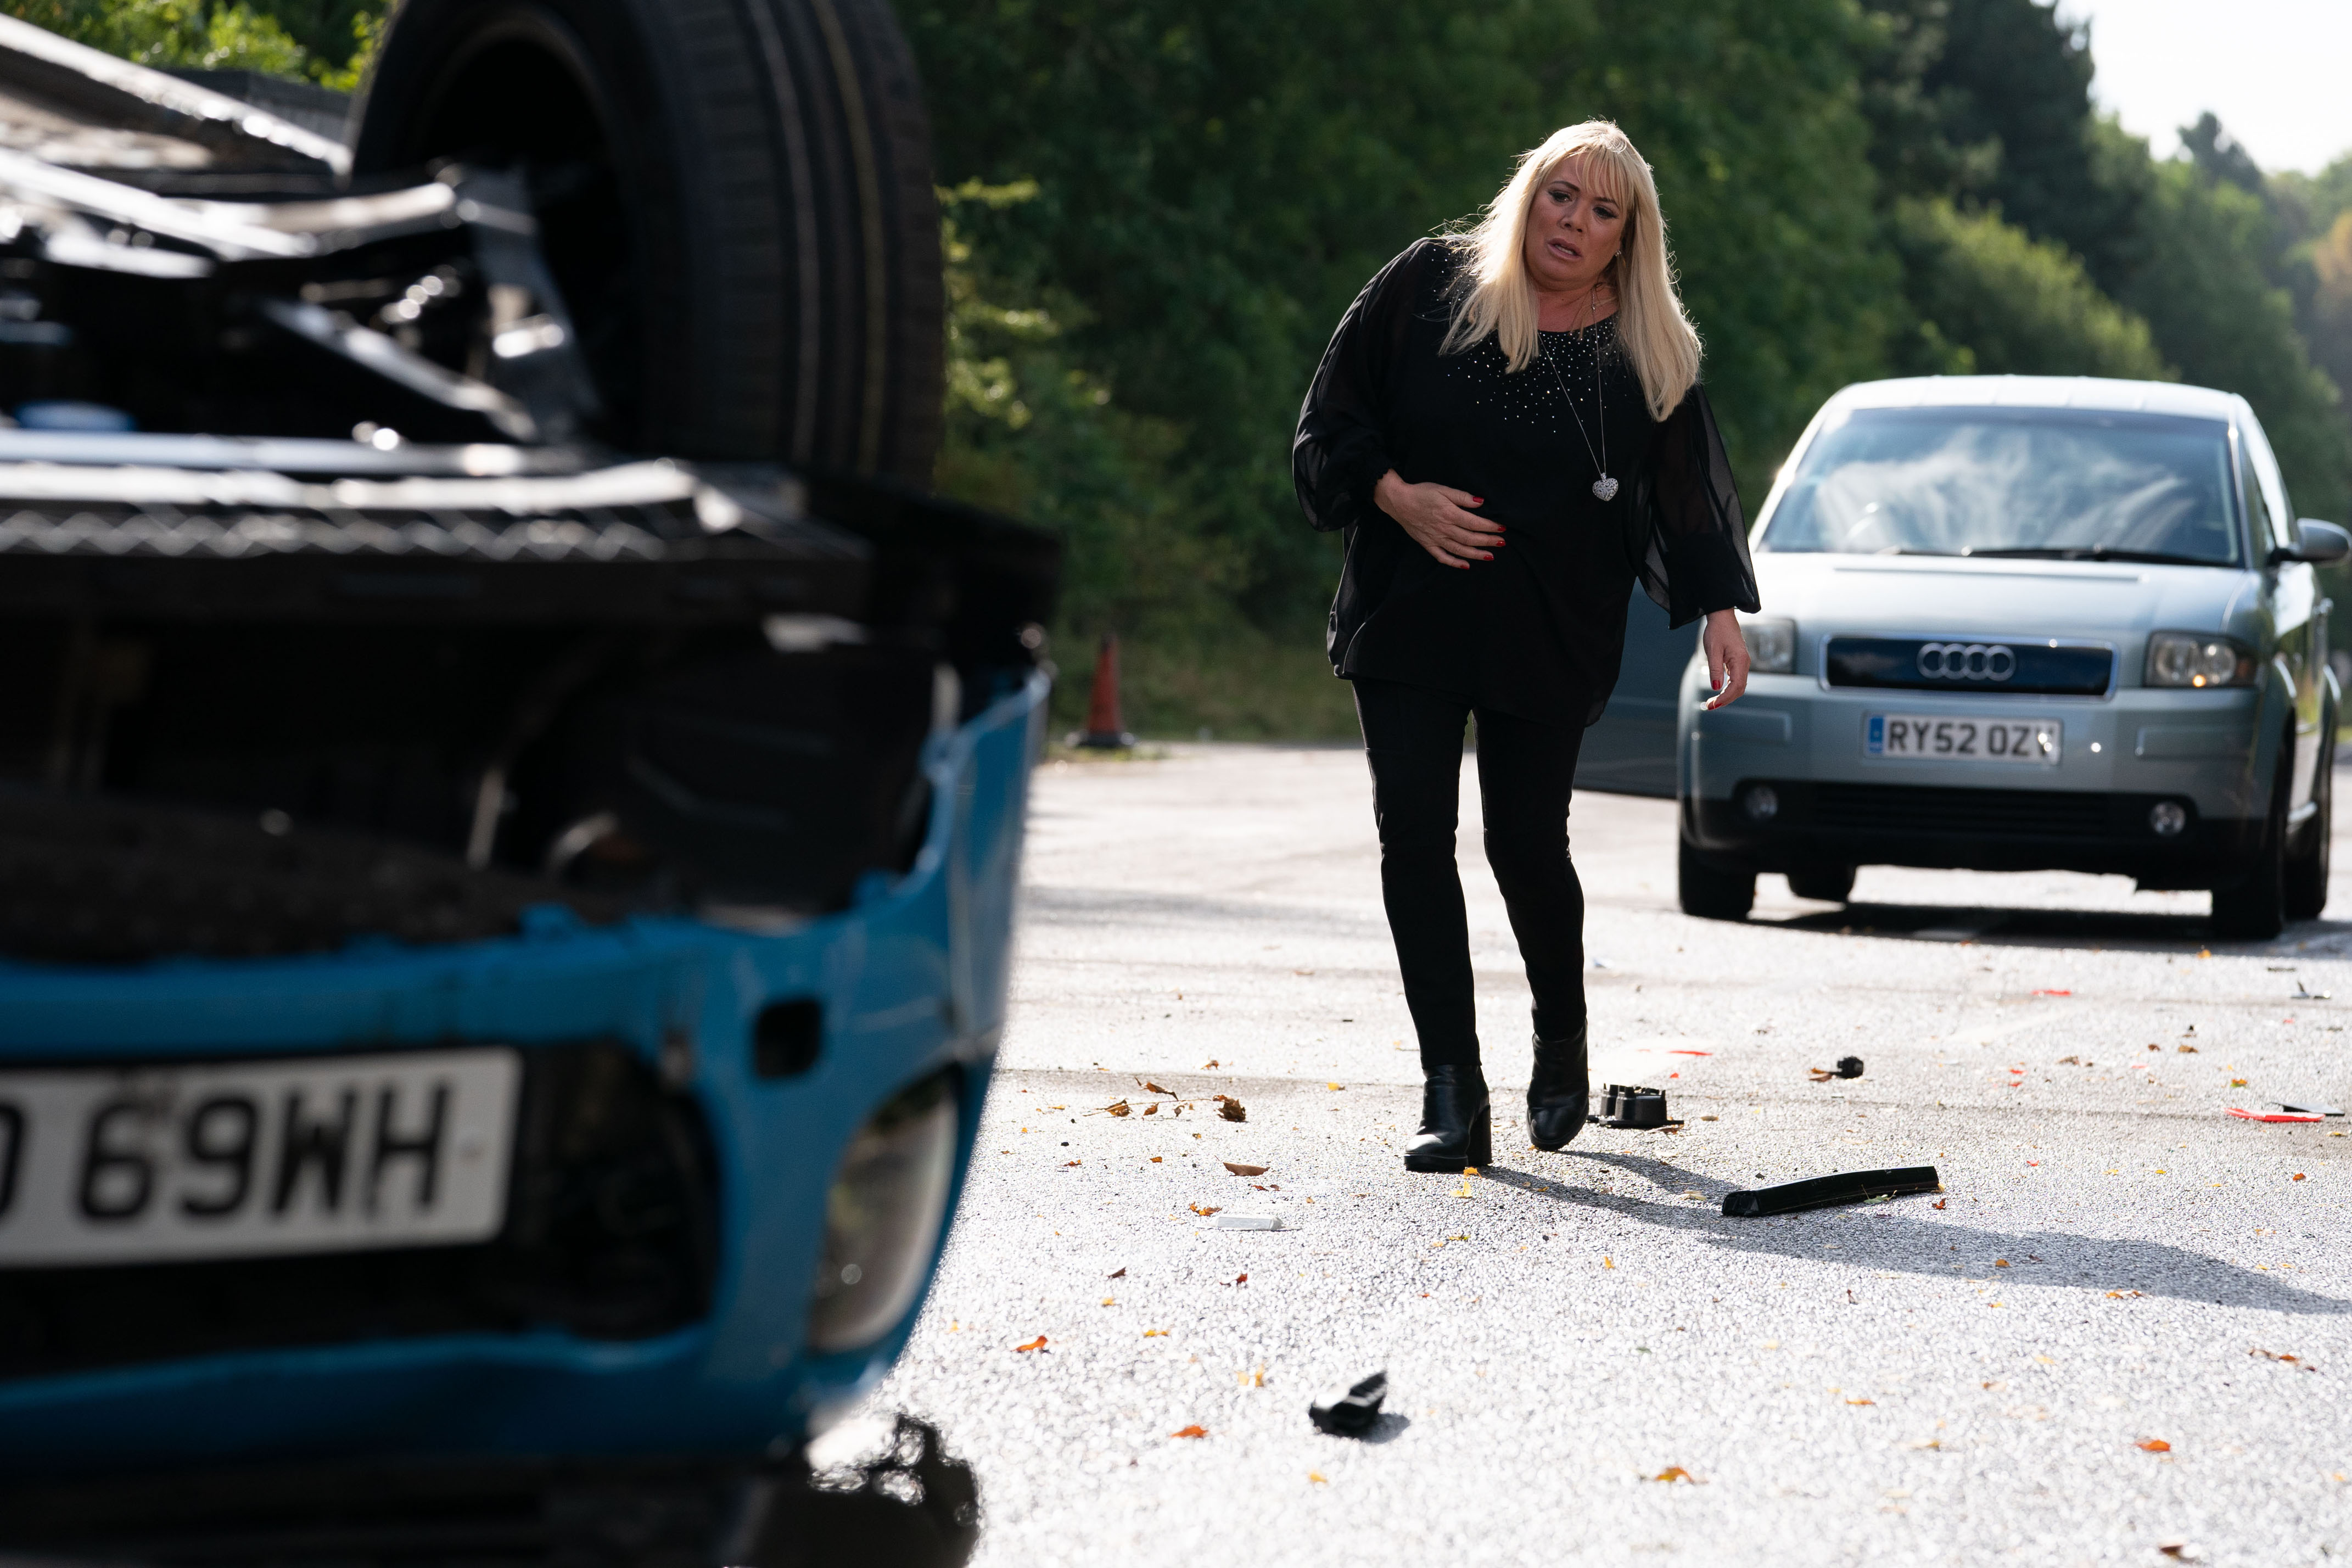 EastEnders SPOILERS: The fall out from Mel's accident revealed in new pictures